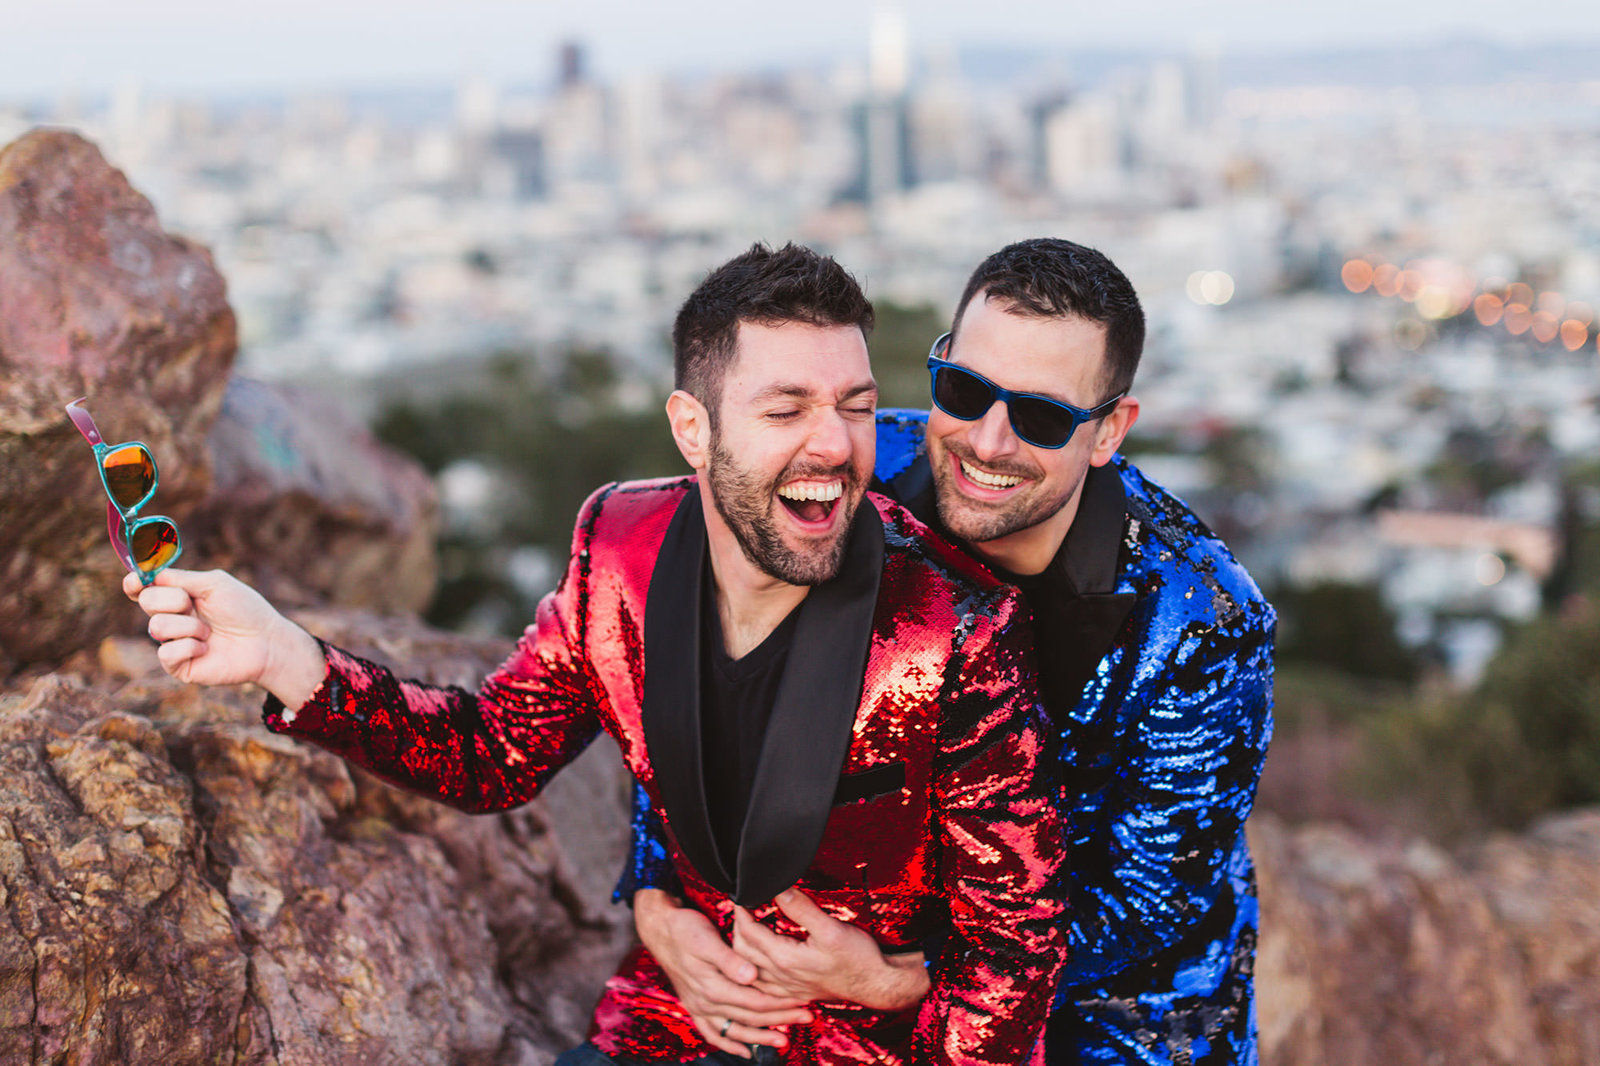 photos of LGBTQ+ couple taken at corona heights